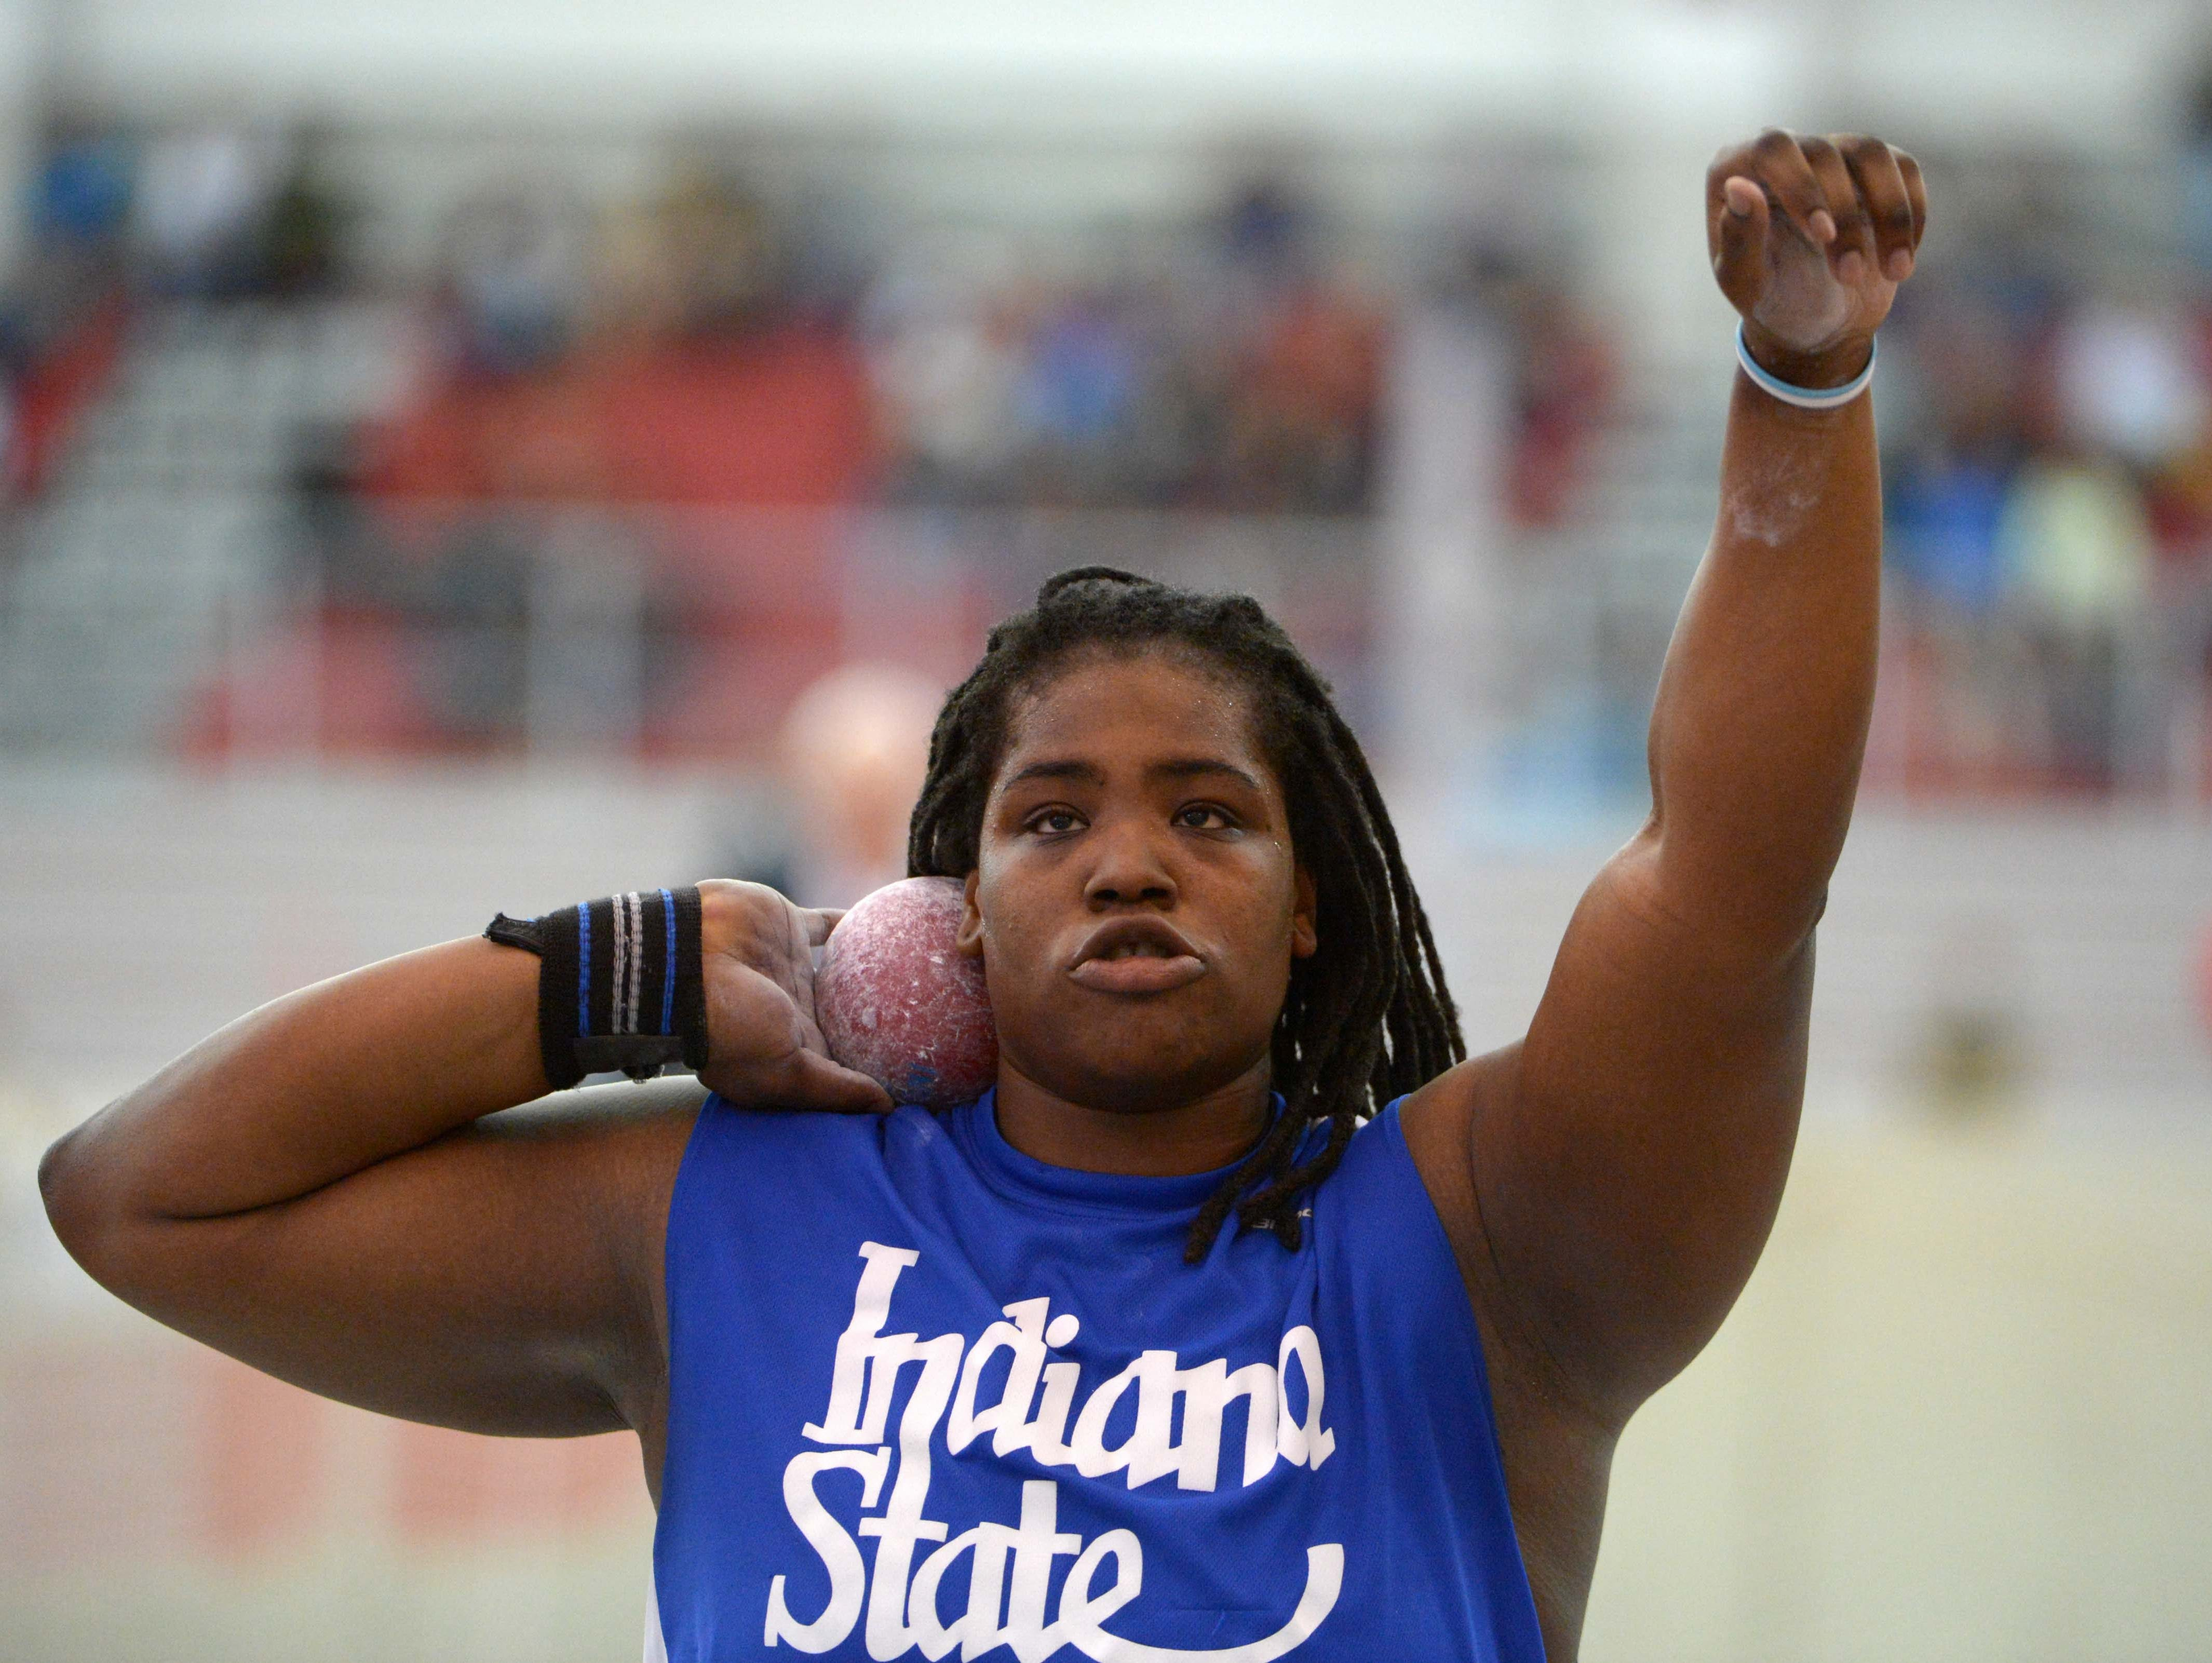 Felisha Johnson of Indiana State places eighth in the womens shot put put at 55-9 (16.99m) in the 2013 NCAA Indoor Championships at the Randal Tyson Center.